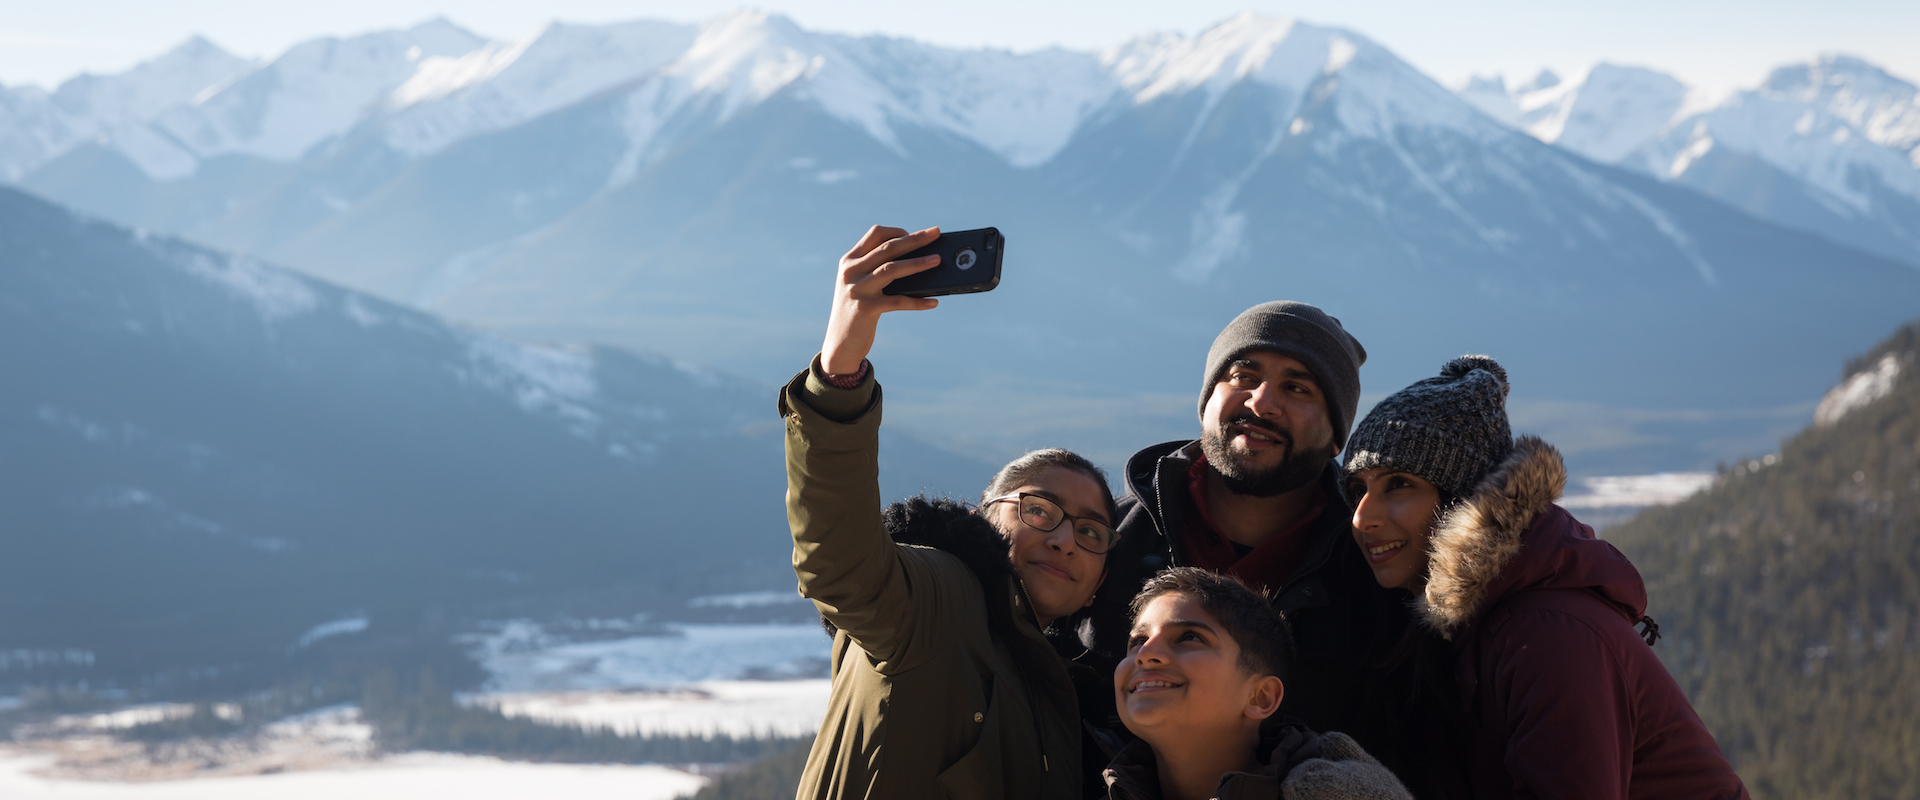 Winter family sightseeing in Banff